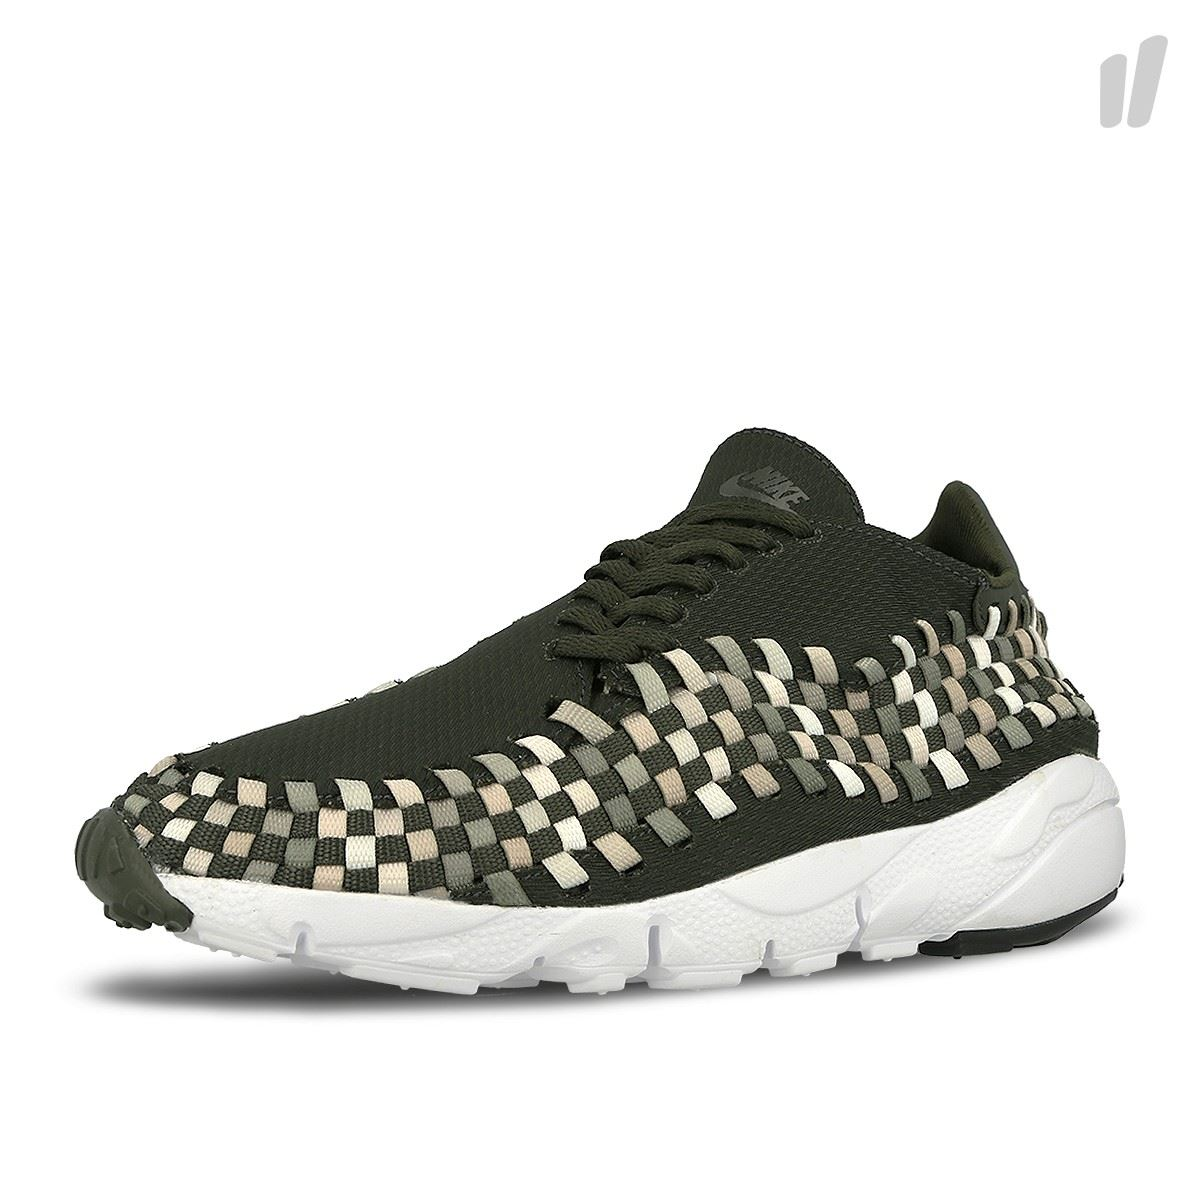 c3d1a0cc8c0 Details about Nike Mens Air Footscape Woven Trainers Green (875797-300)